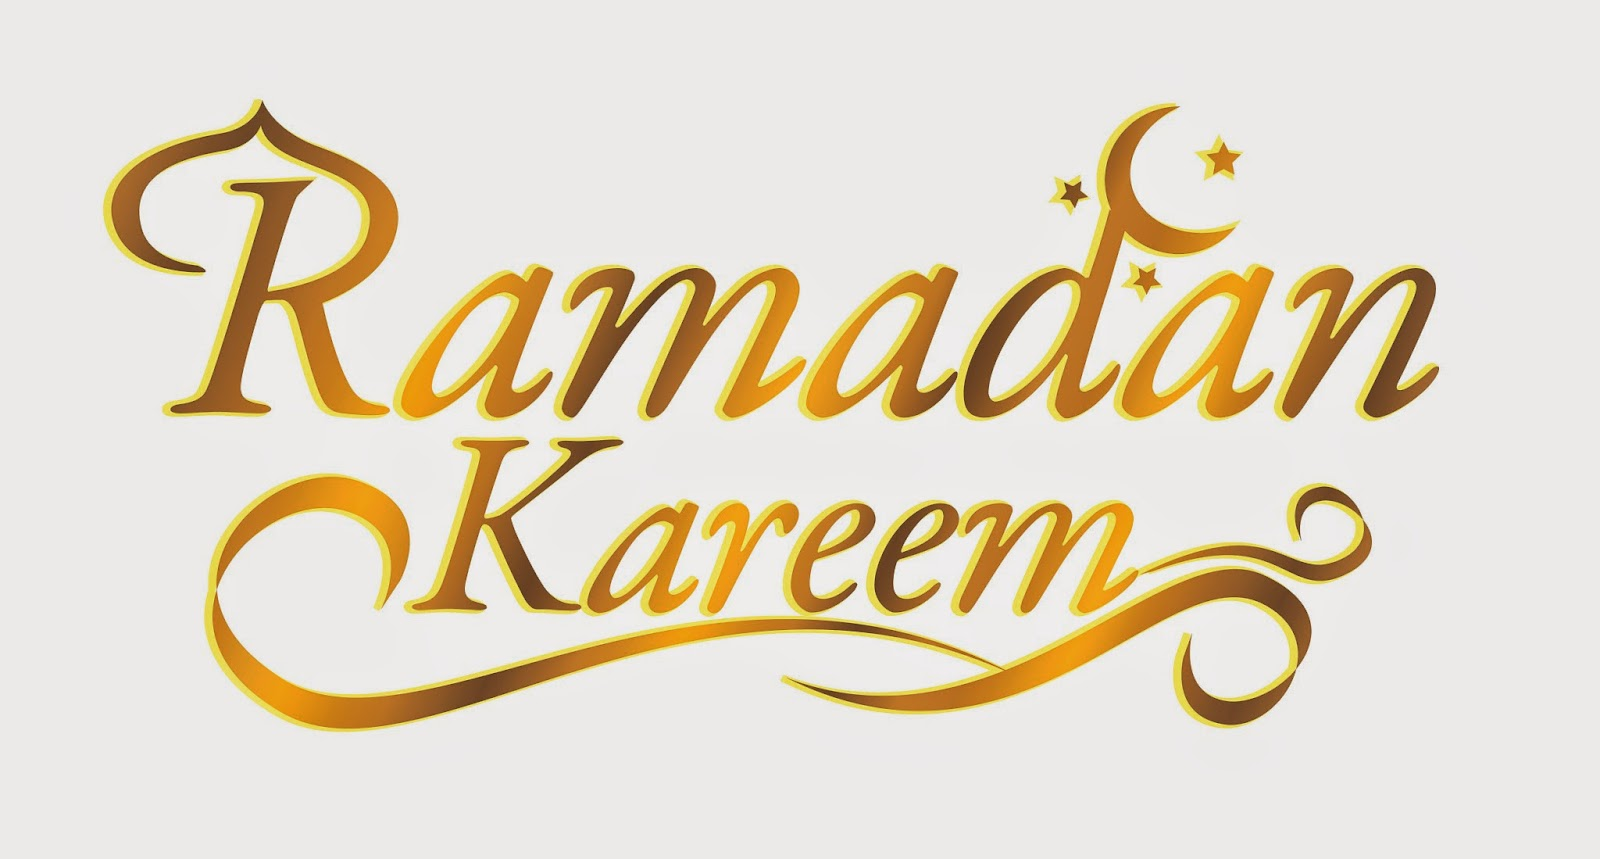 Free Clip Arts: Golden Ramadan Kareen Vector Clipart - Ramadan HD PNG